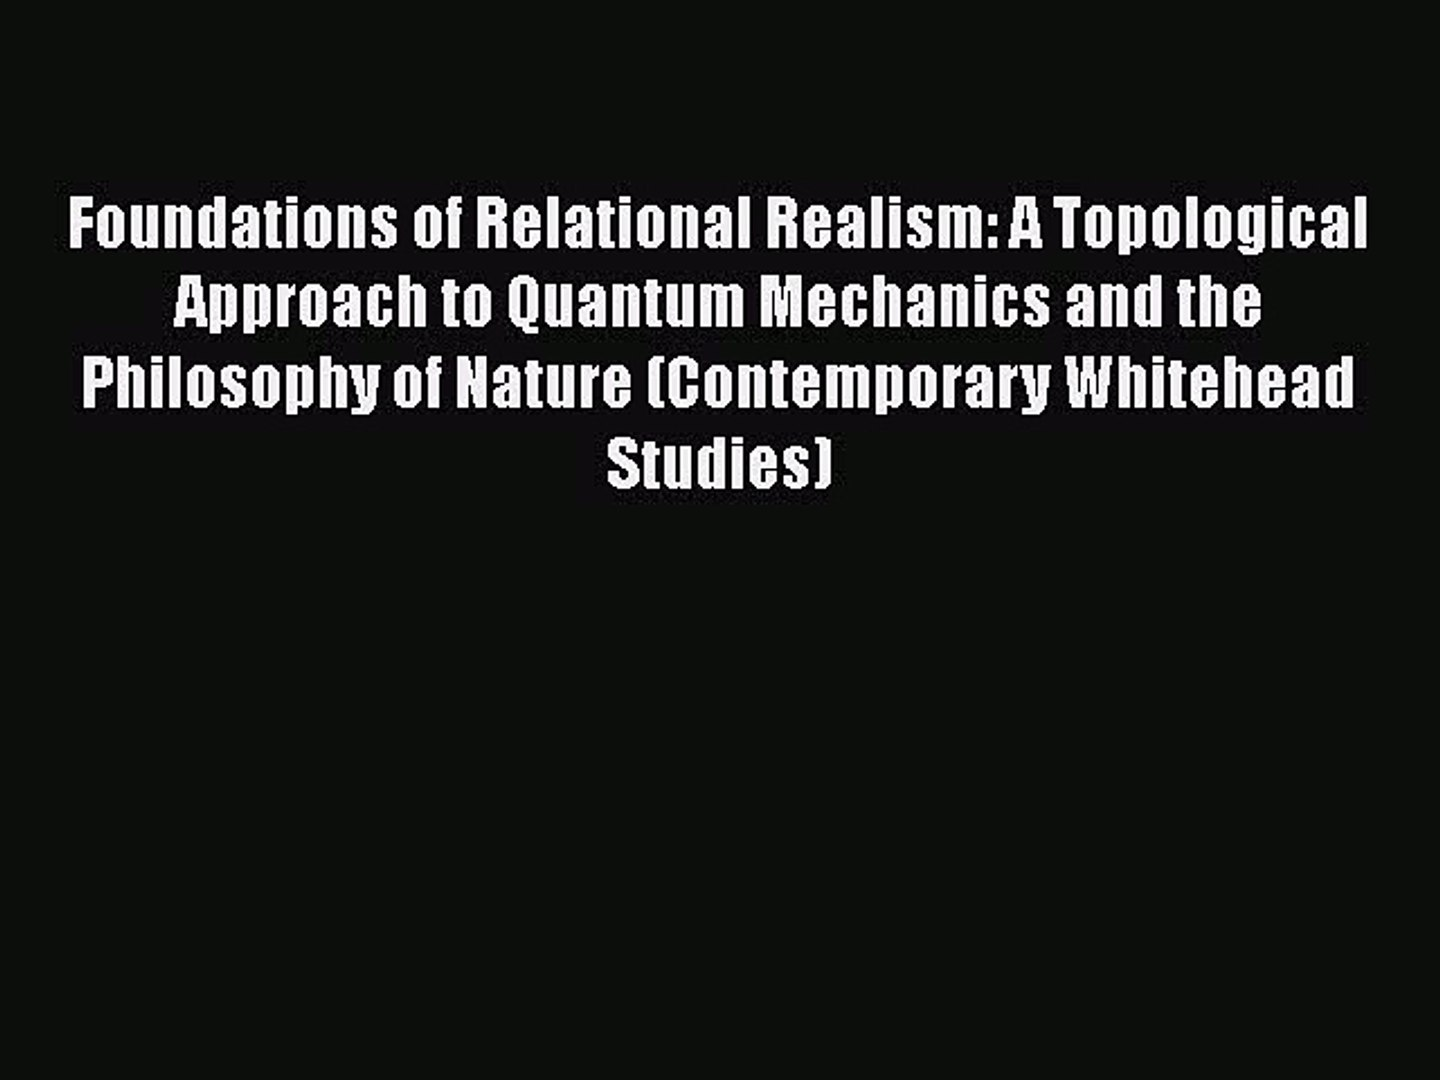 Foundations of Relational Realism A Topological Approach to Quantum Mechanics and the Philosophy of Nature